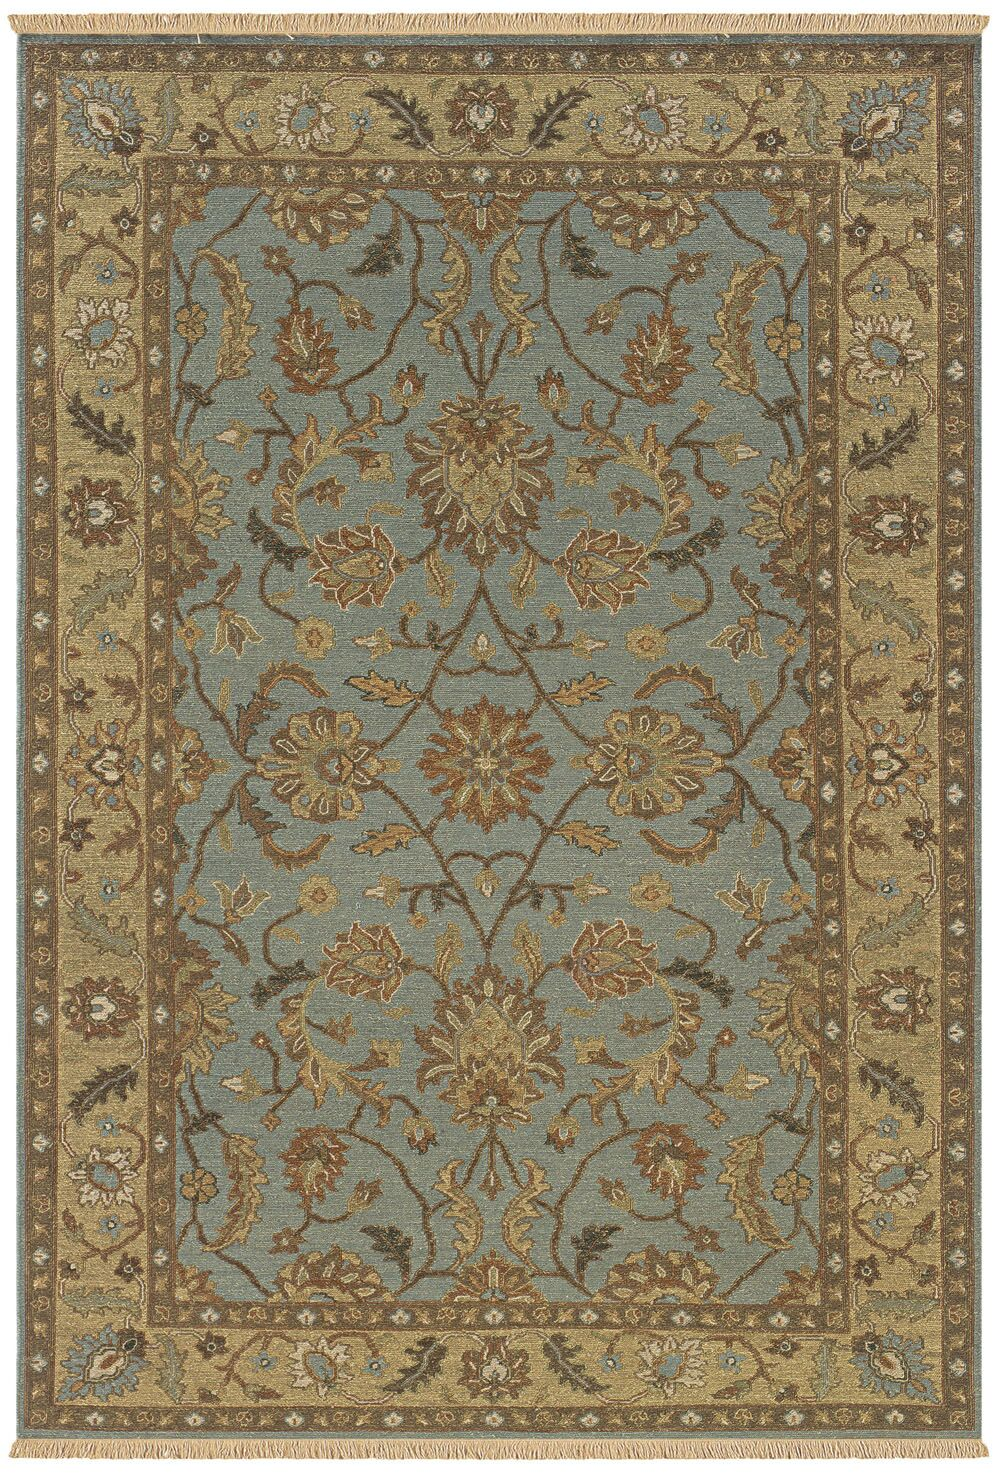 Washim Hand-Woven Light Blue Area Rug Rug Size: Runner 2'6